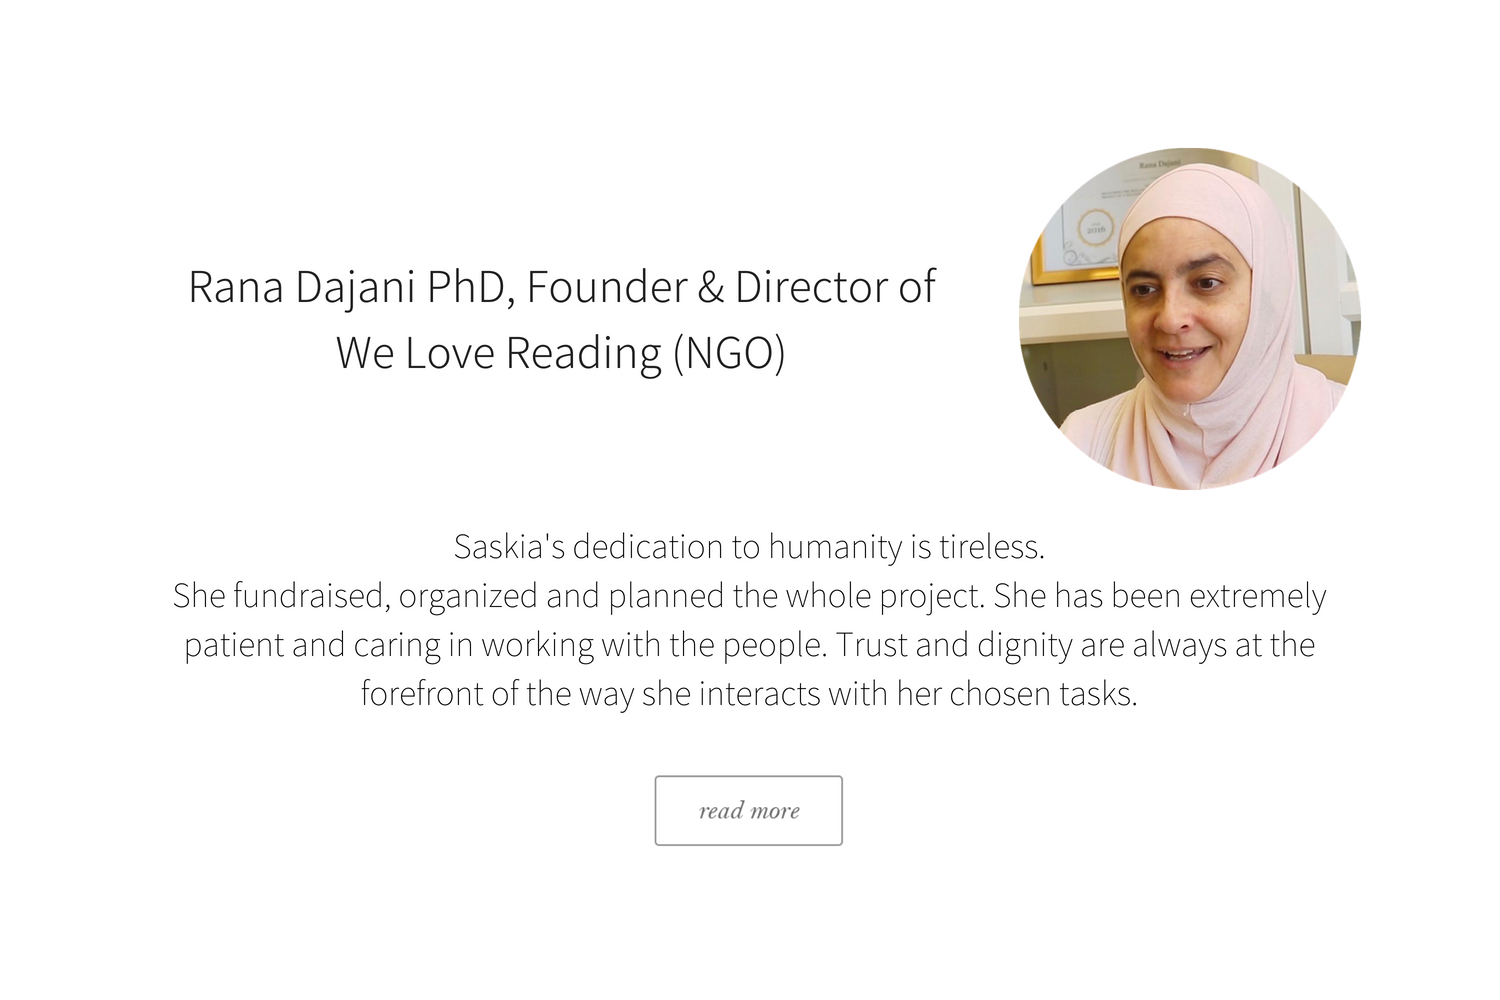 saskia-keeley-photography-humanitarian-documentarian-rana-dajani-phd-we-love-reading-testimonial.png